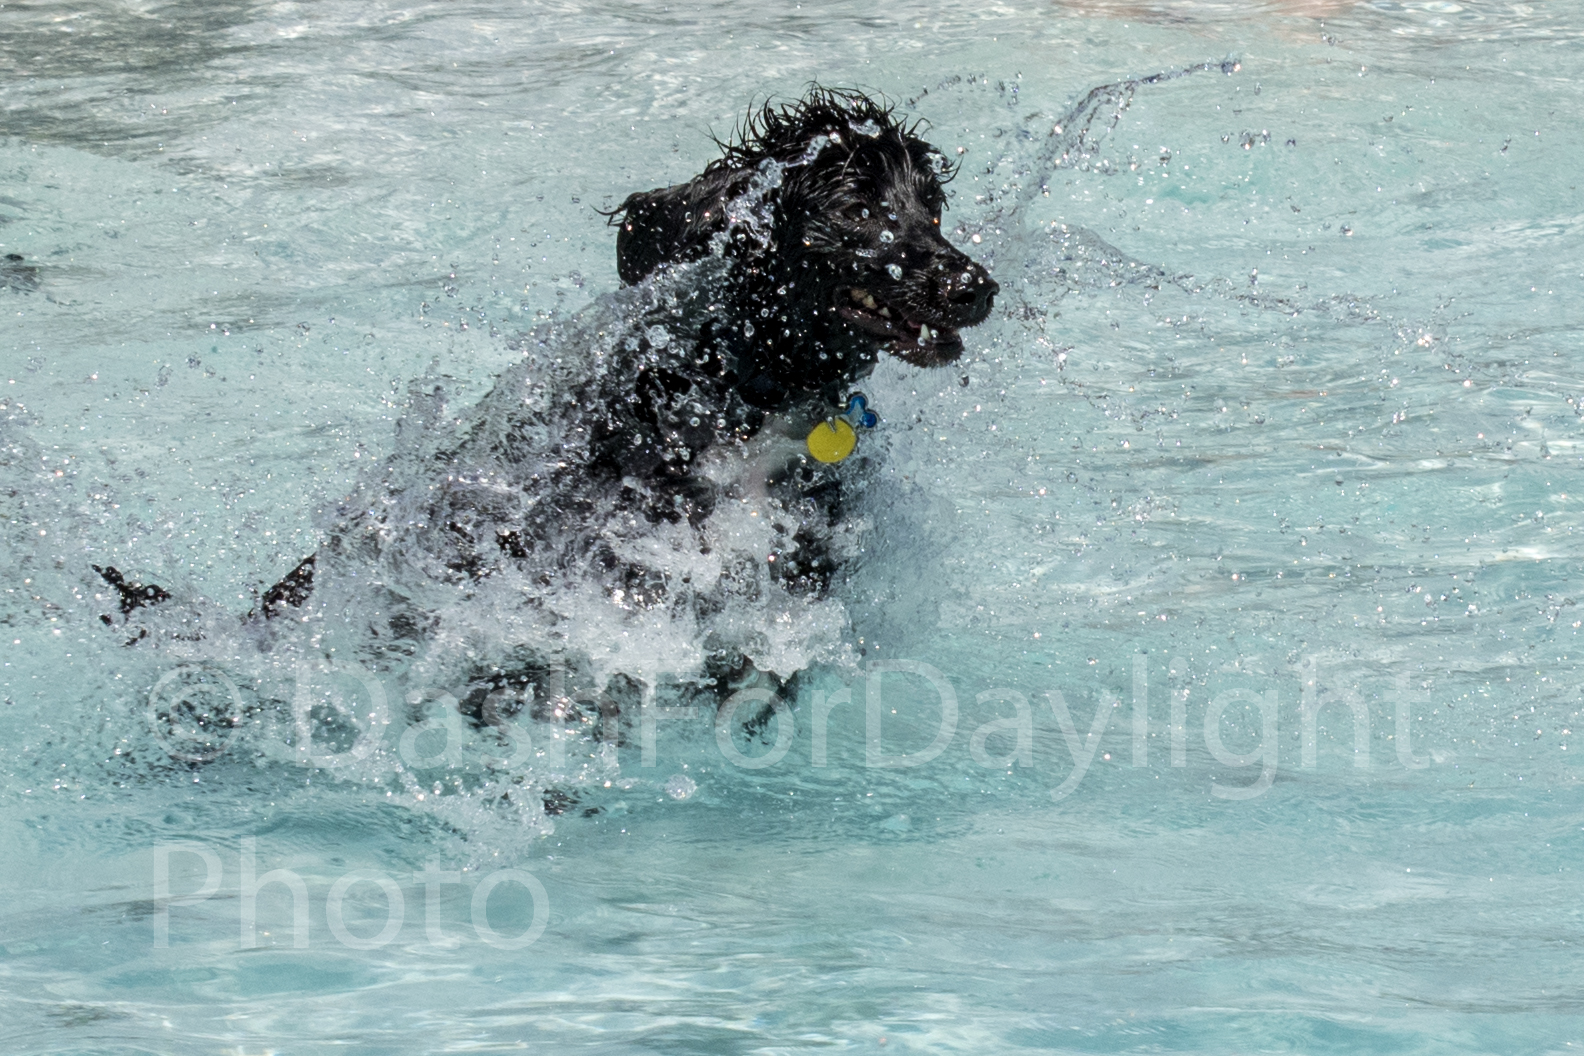 #1299 Zeke Emerging out of the Water